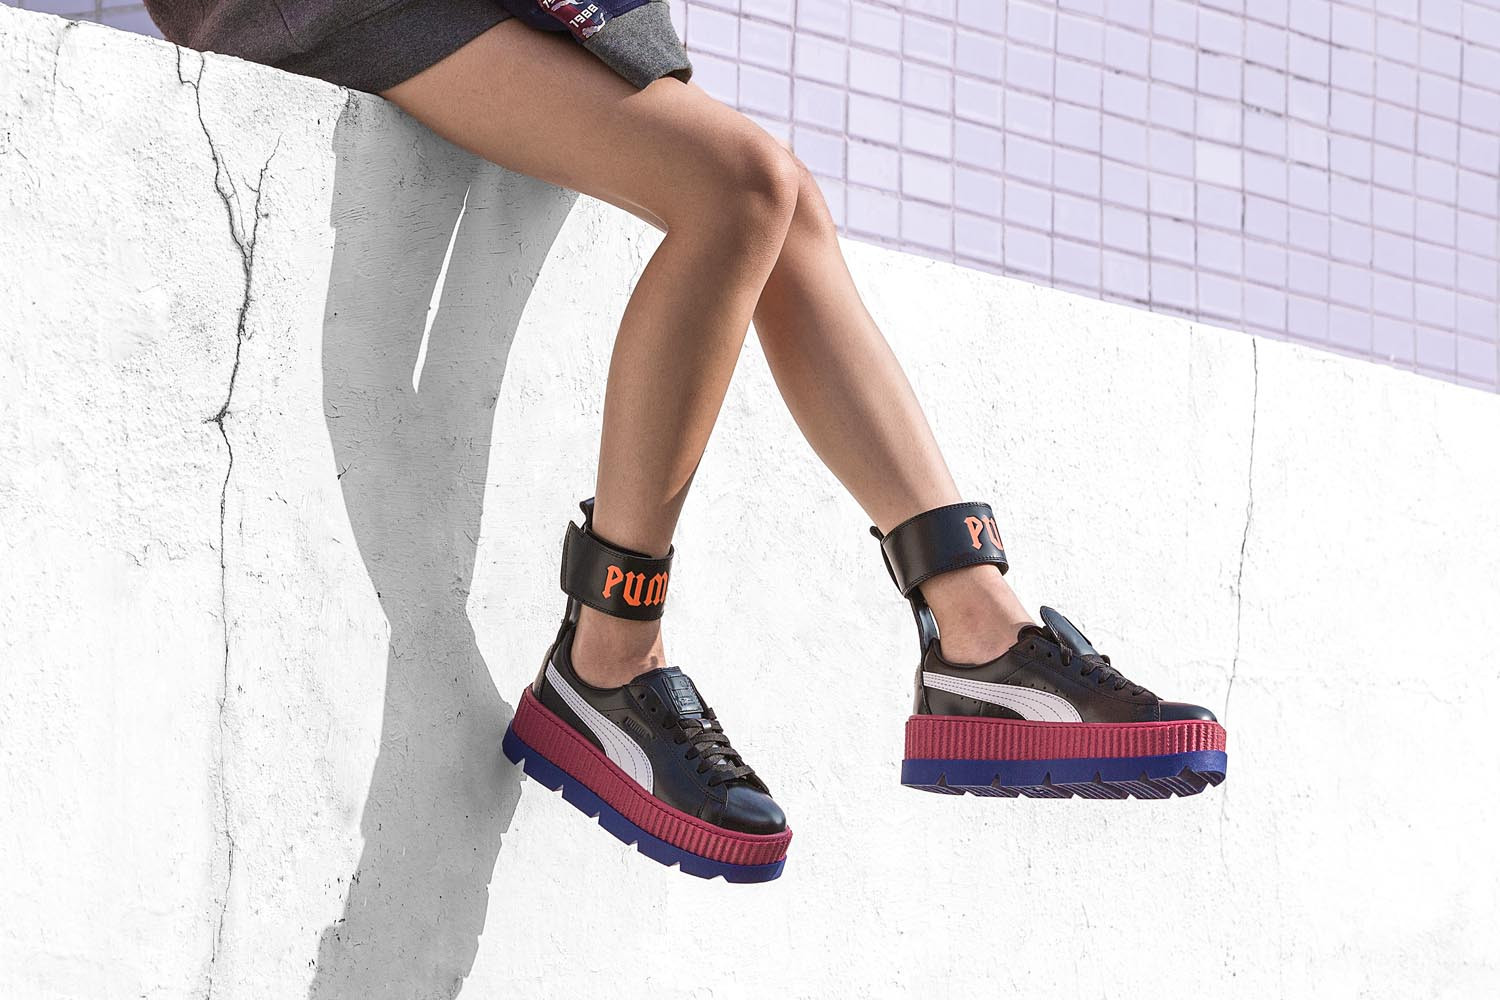 official photos 23125 59c4c Fenty Puma By Rihanna Ankle Strap Creeper | HBX Journal